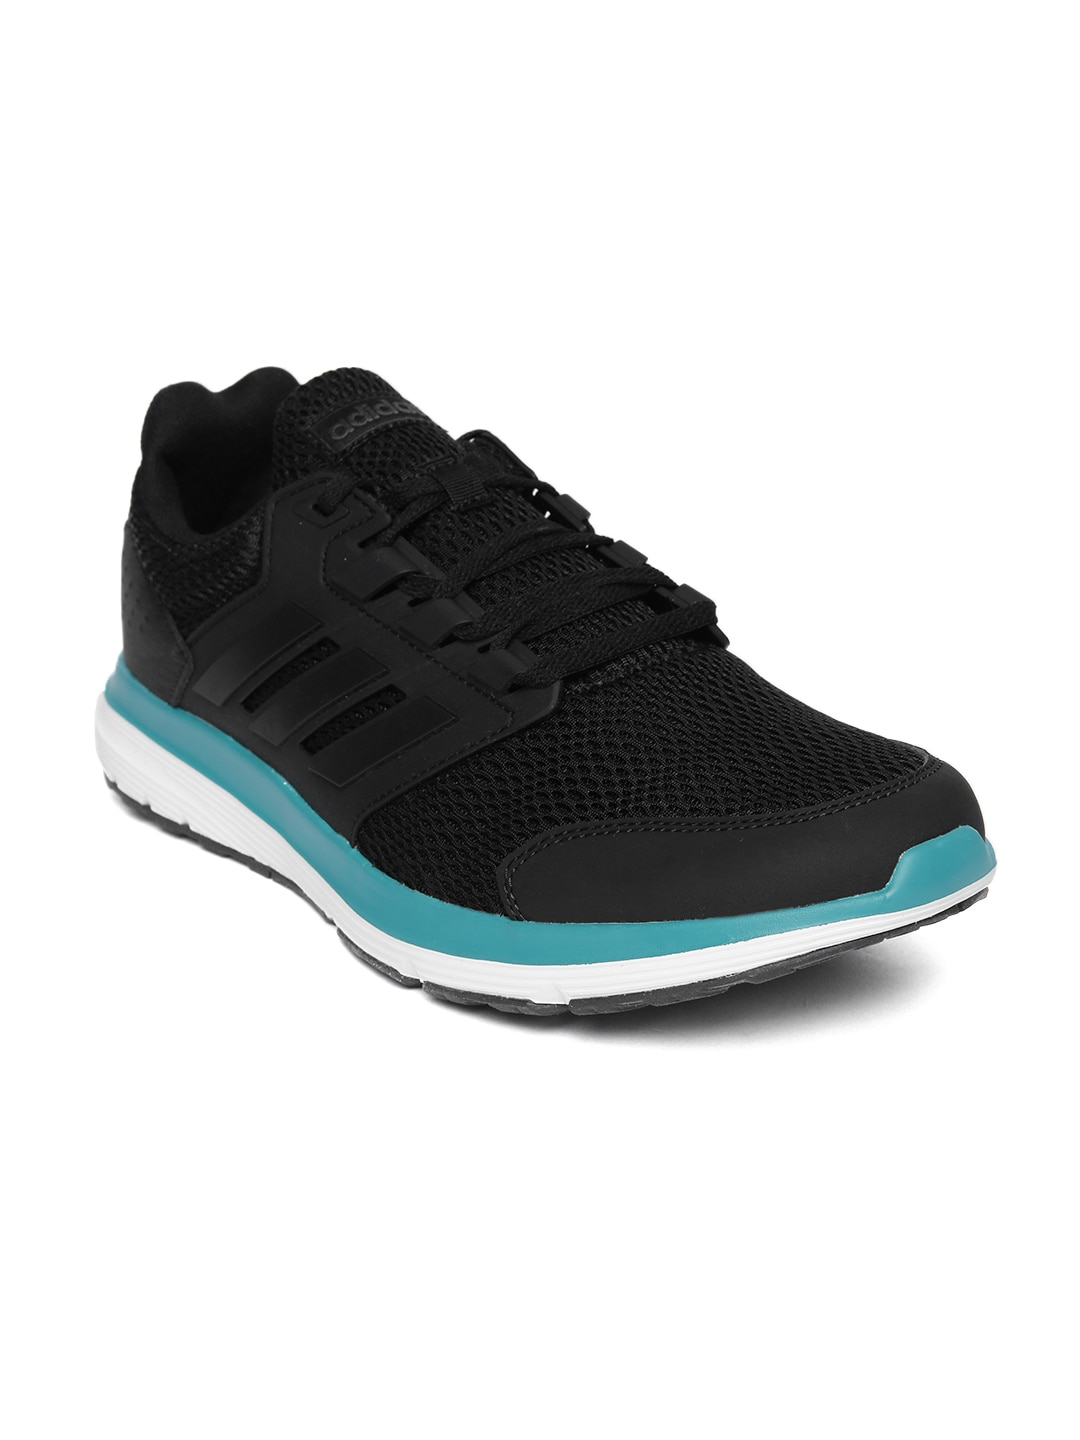 9e5c17ef20dc4 Men s Adidas Sports Shoes - Buy Adidas Sports Shoes for Men Online in India